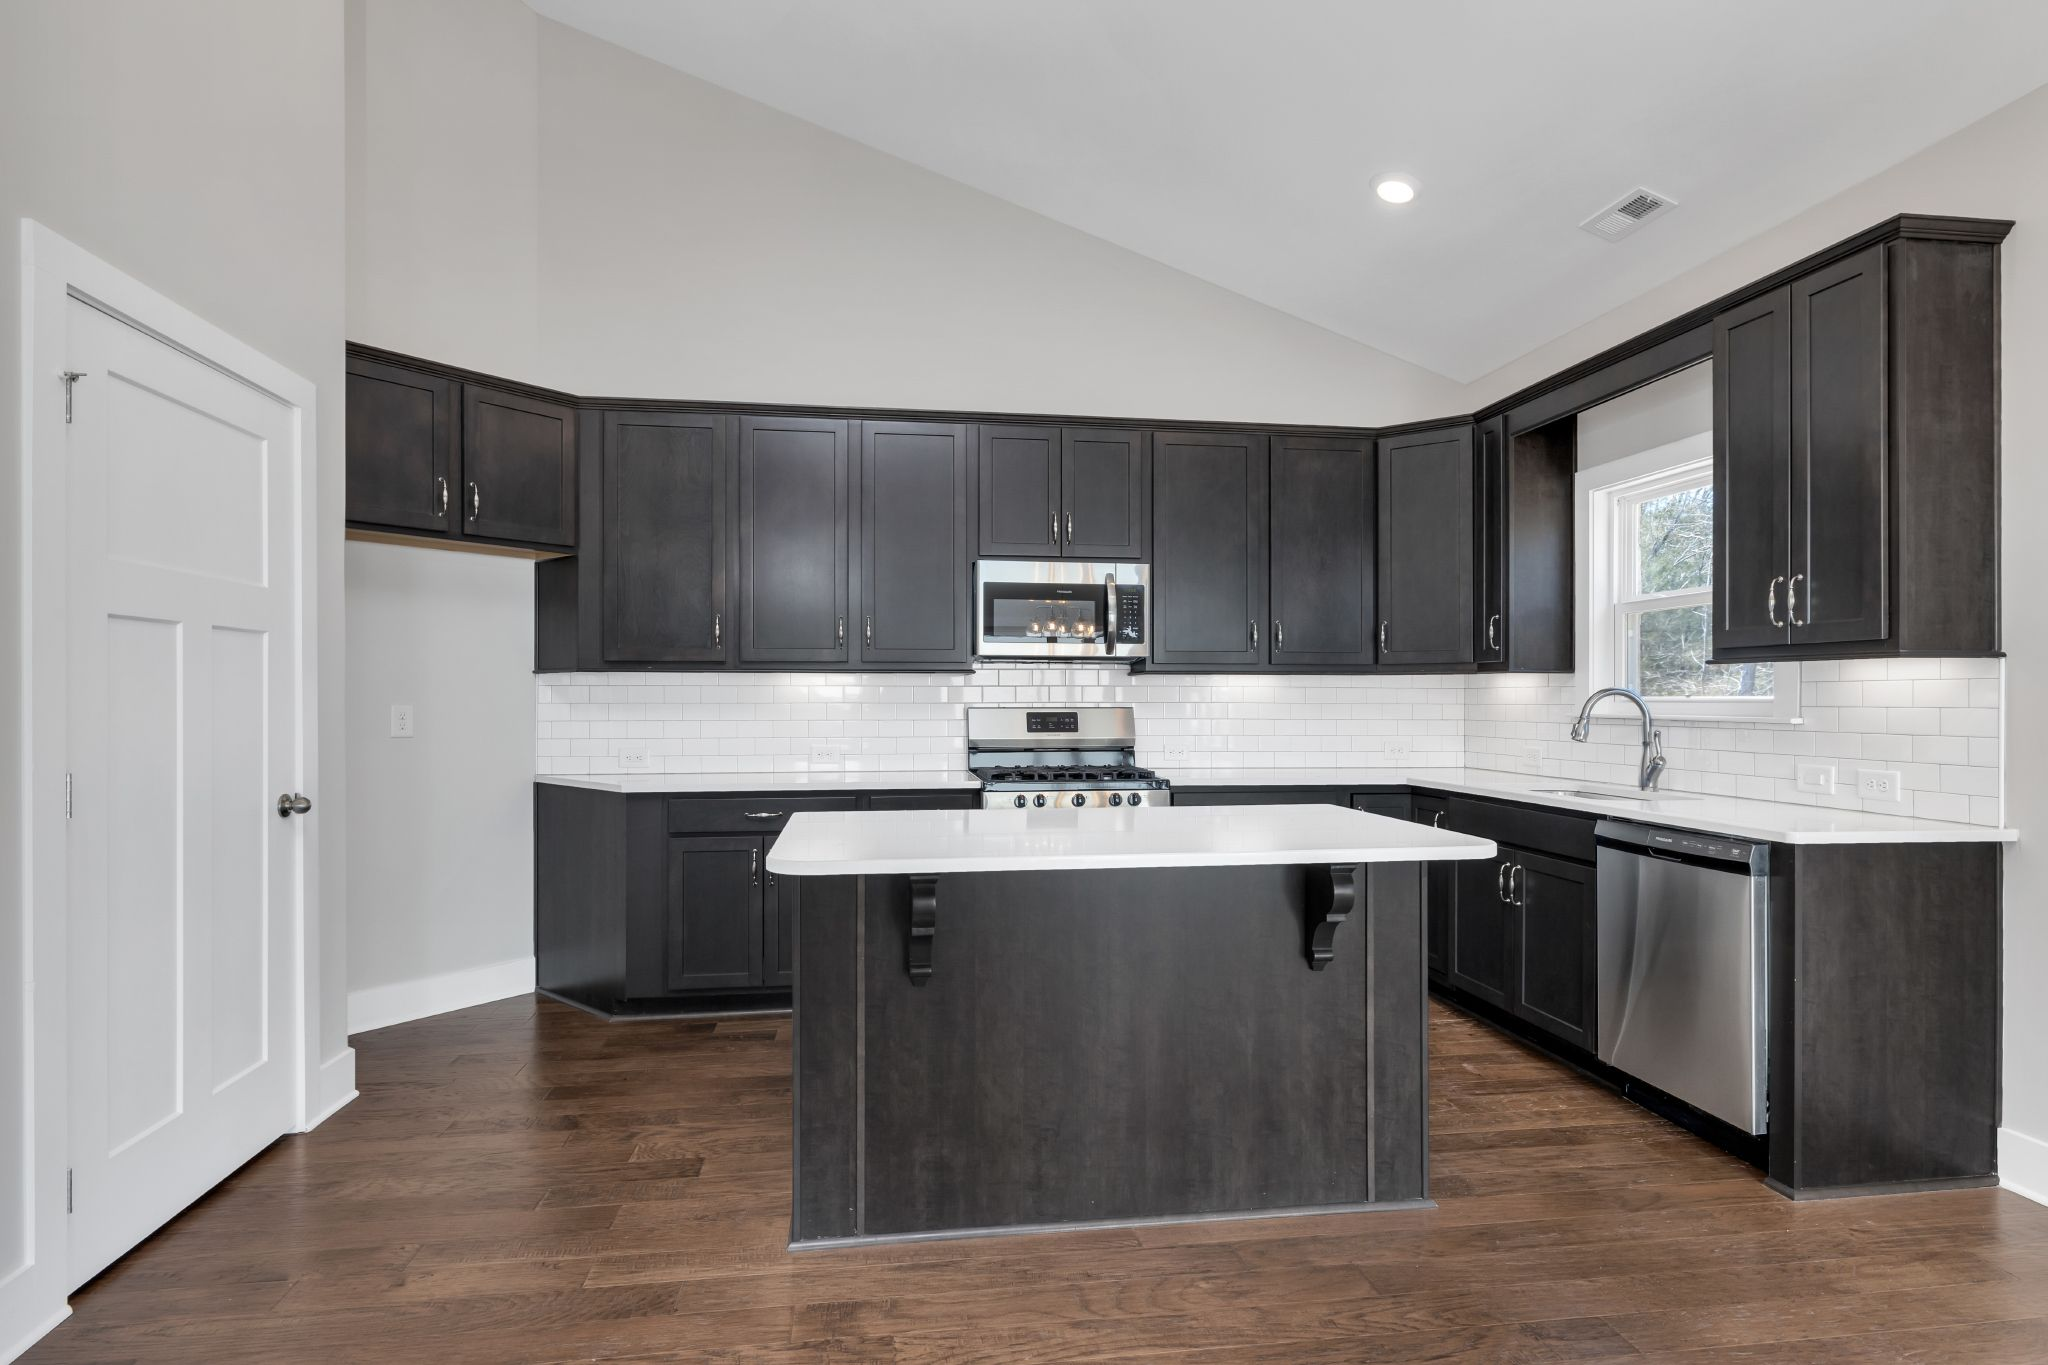 Kitchen featured in The Hanover By Goodall Homes in Knoxville, TN